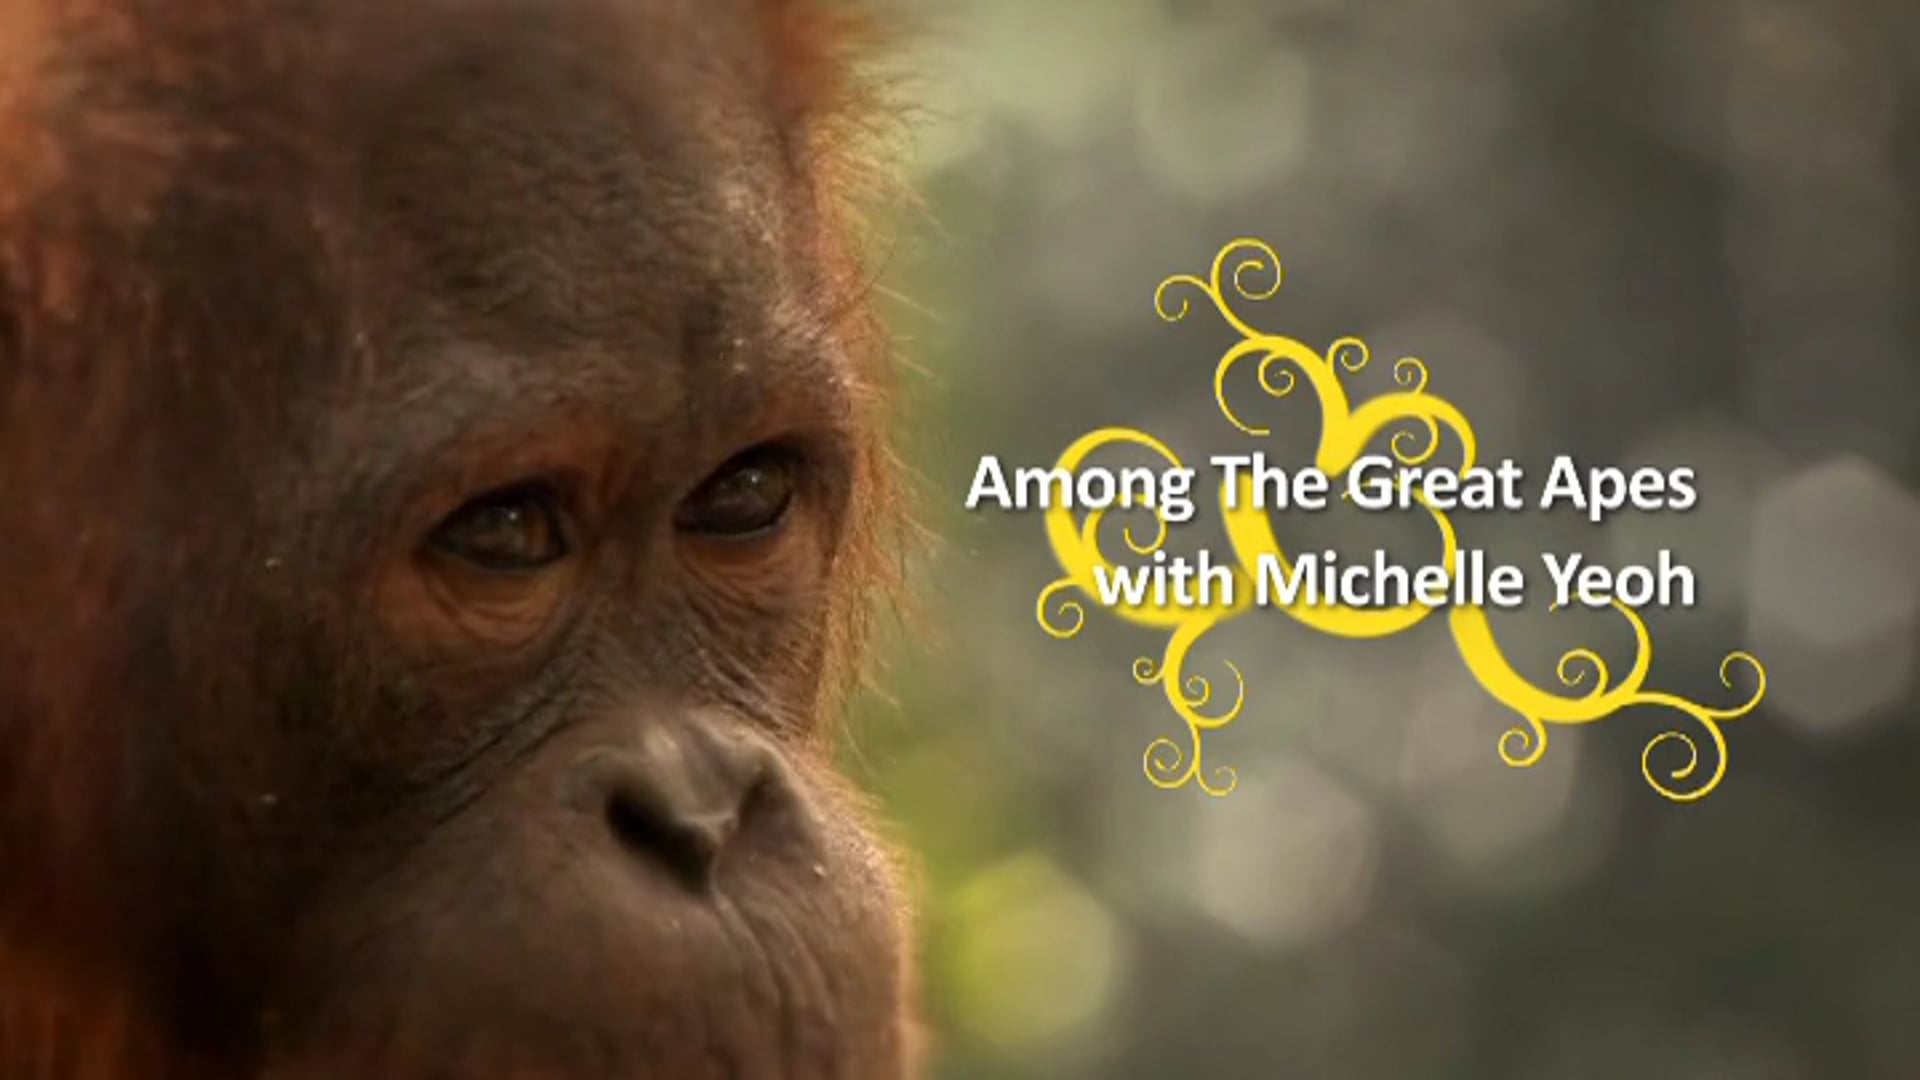 Among The Great Apes with Michelle Yeoh (Trailer)